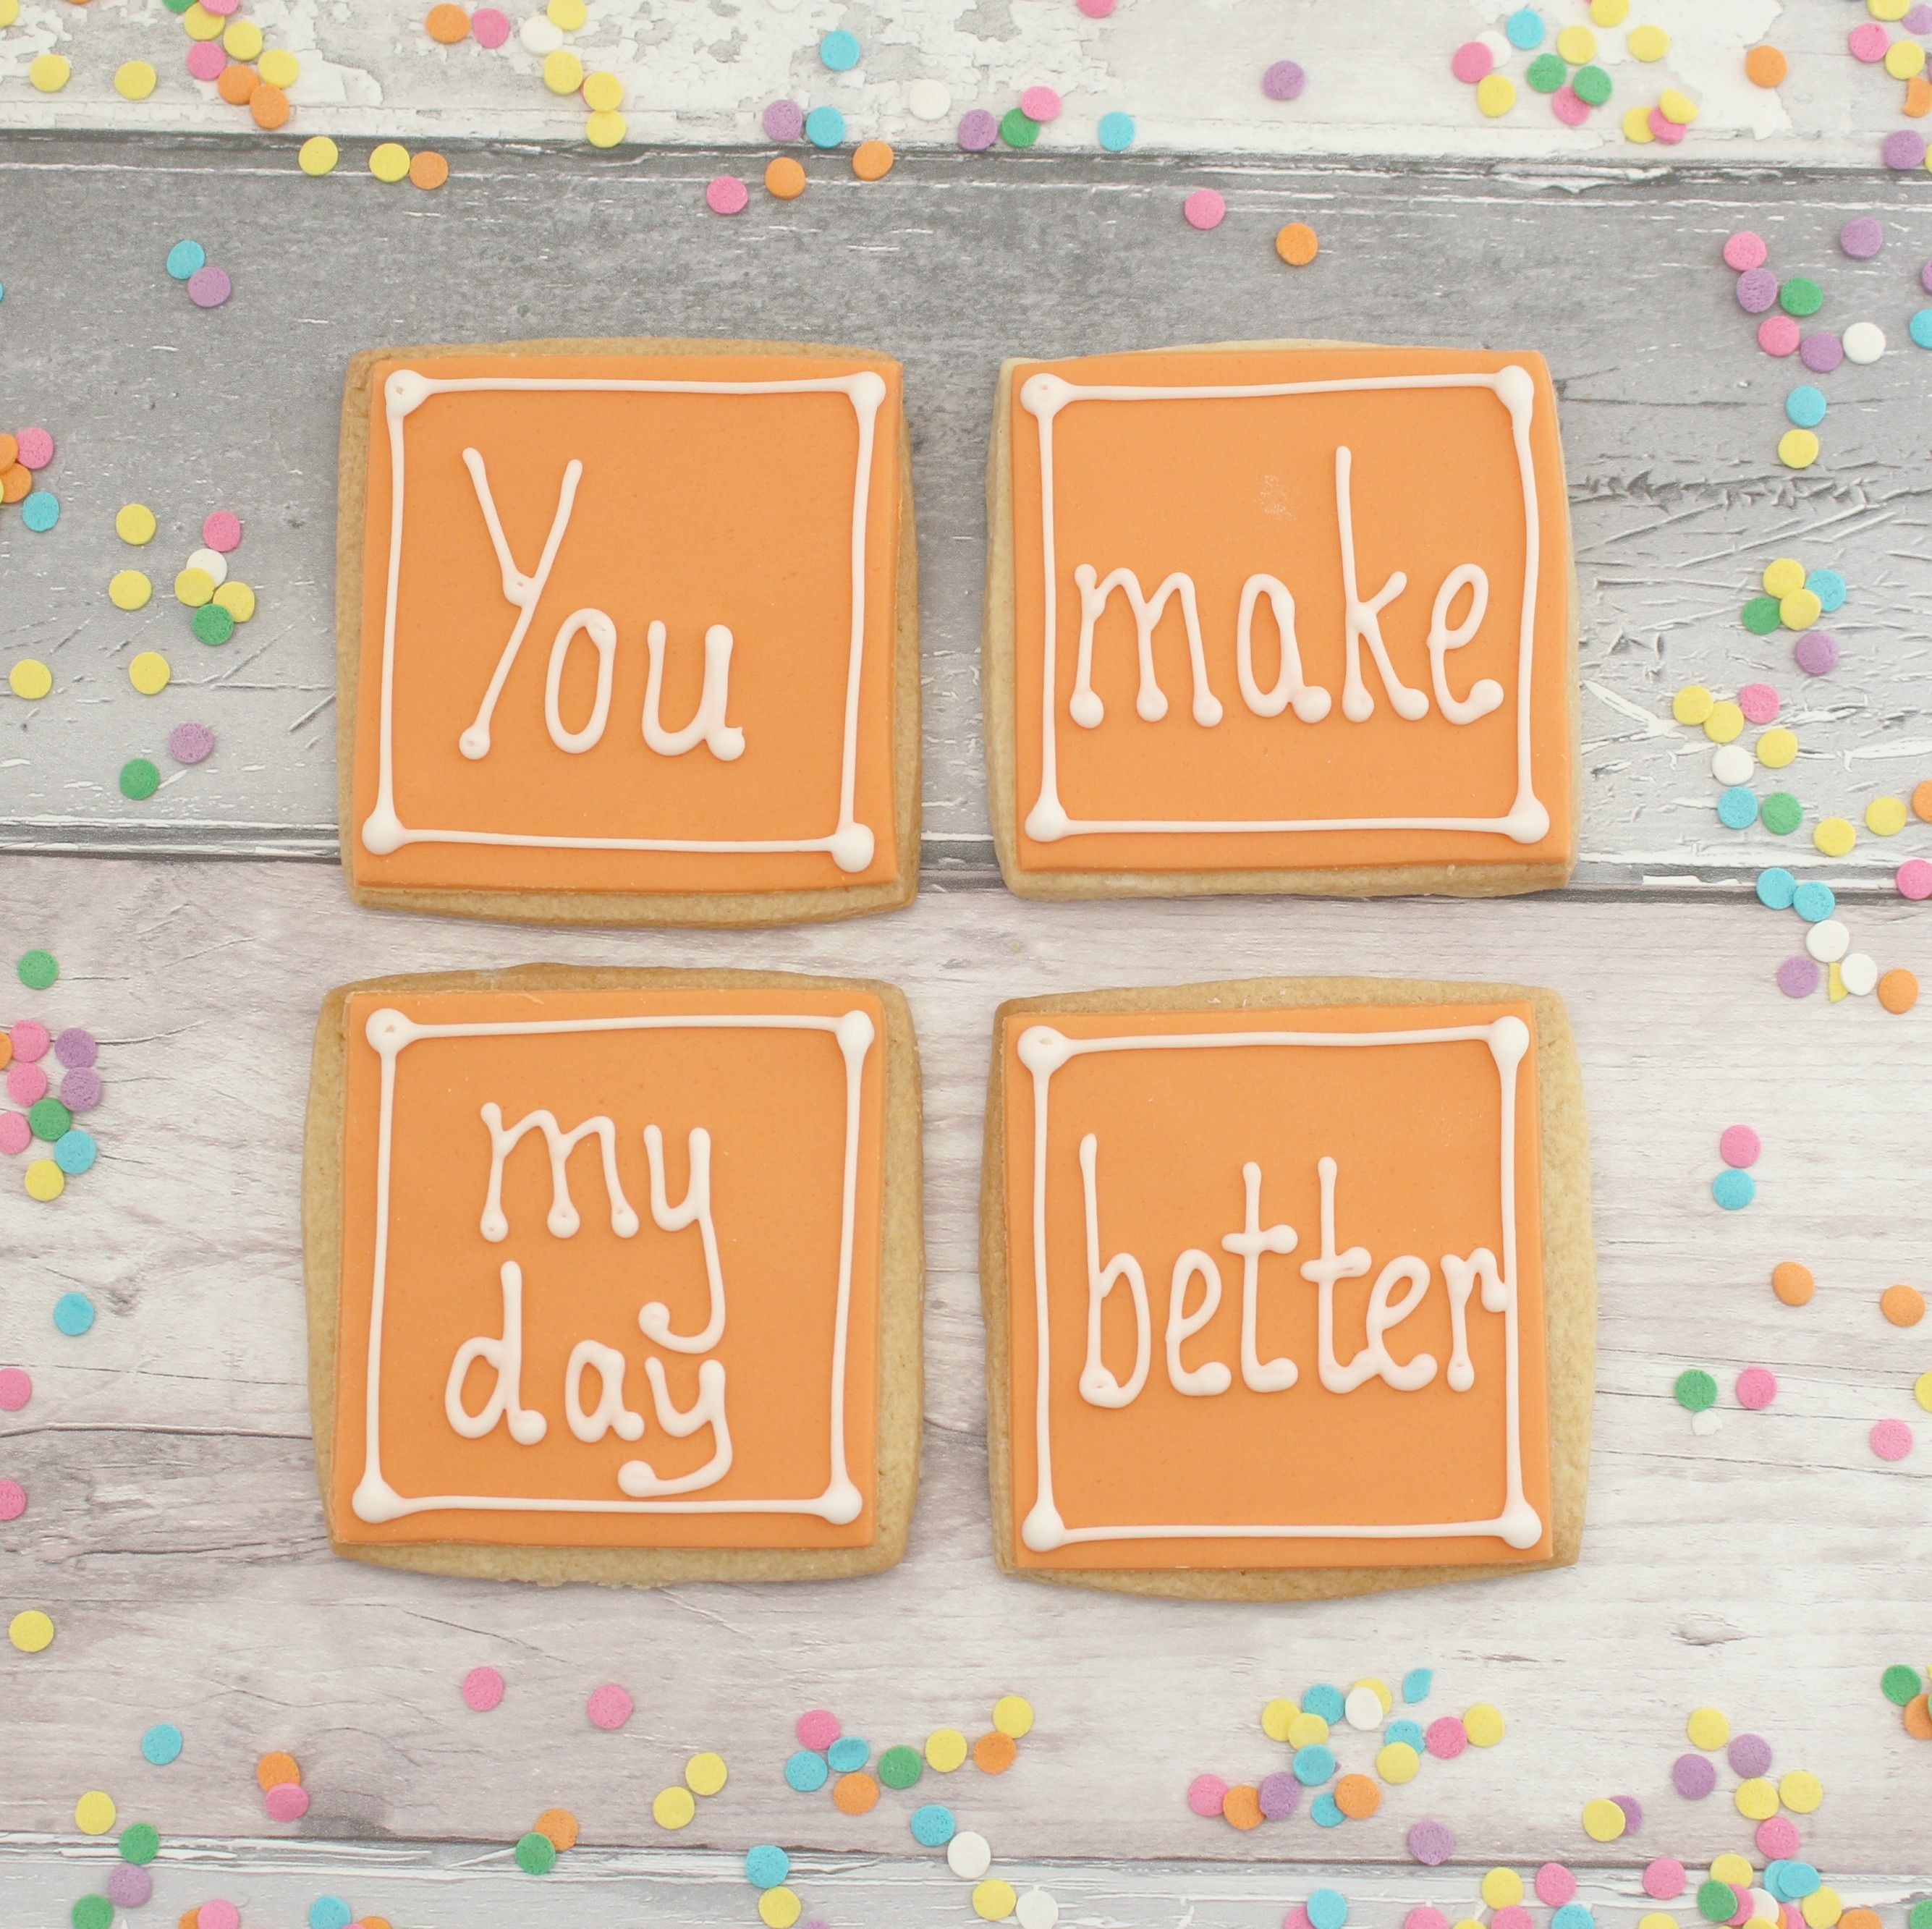 Cute anniversary gift for partner thinking of you present